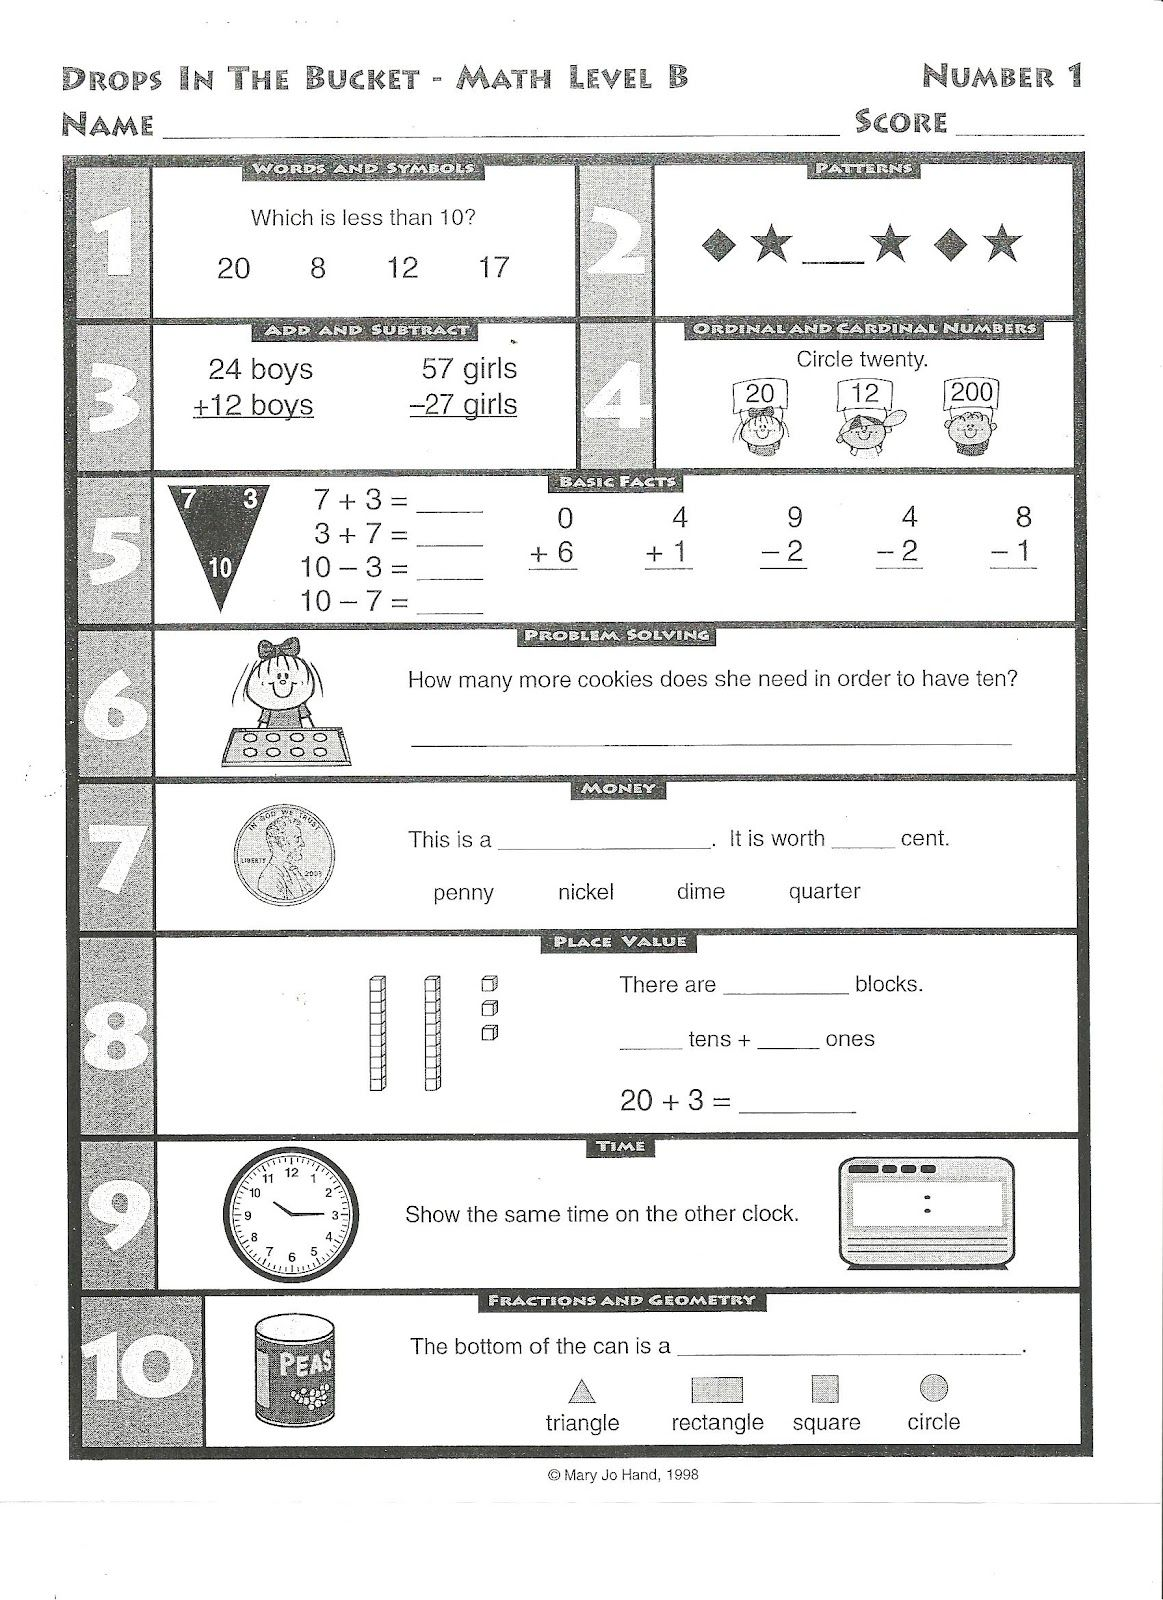 Drop In The Bucket Worksheets - Synhoff